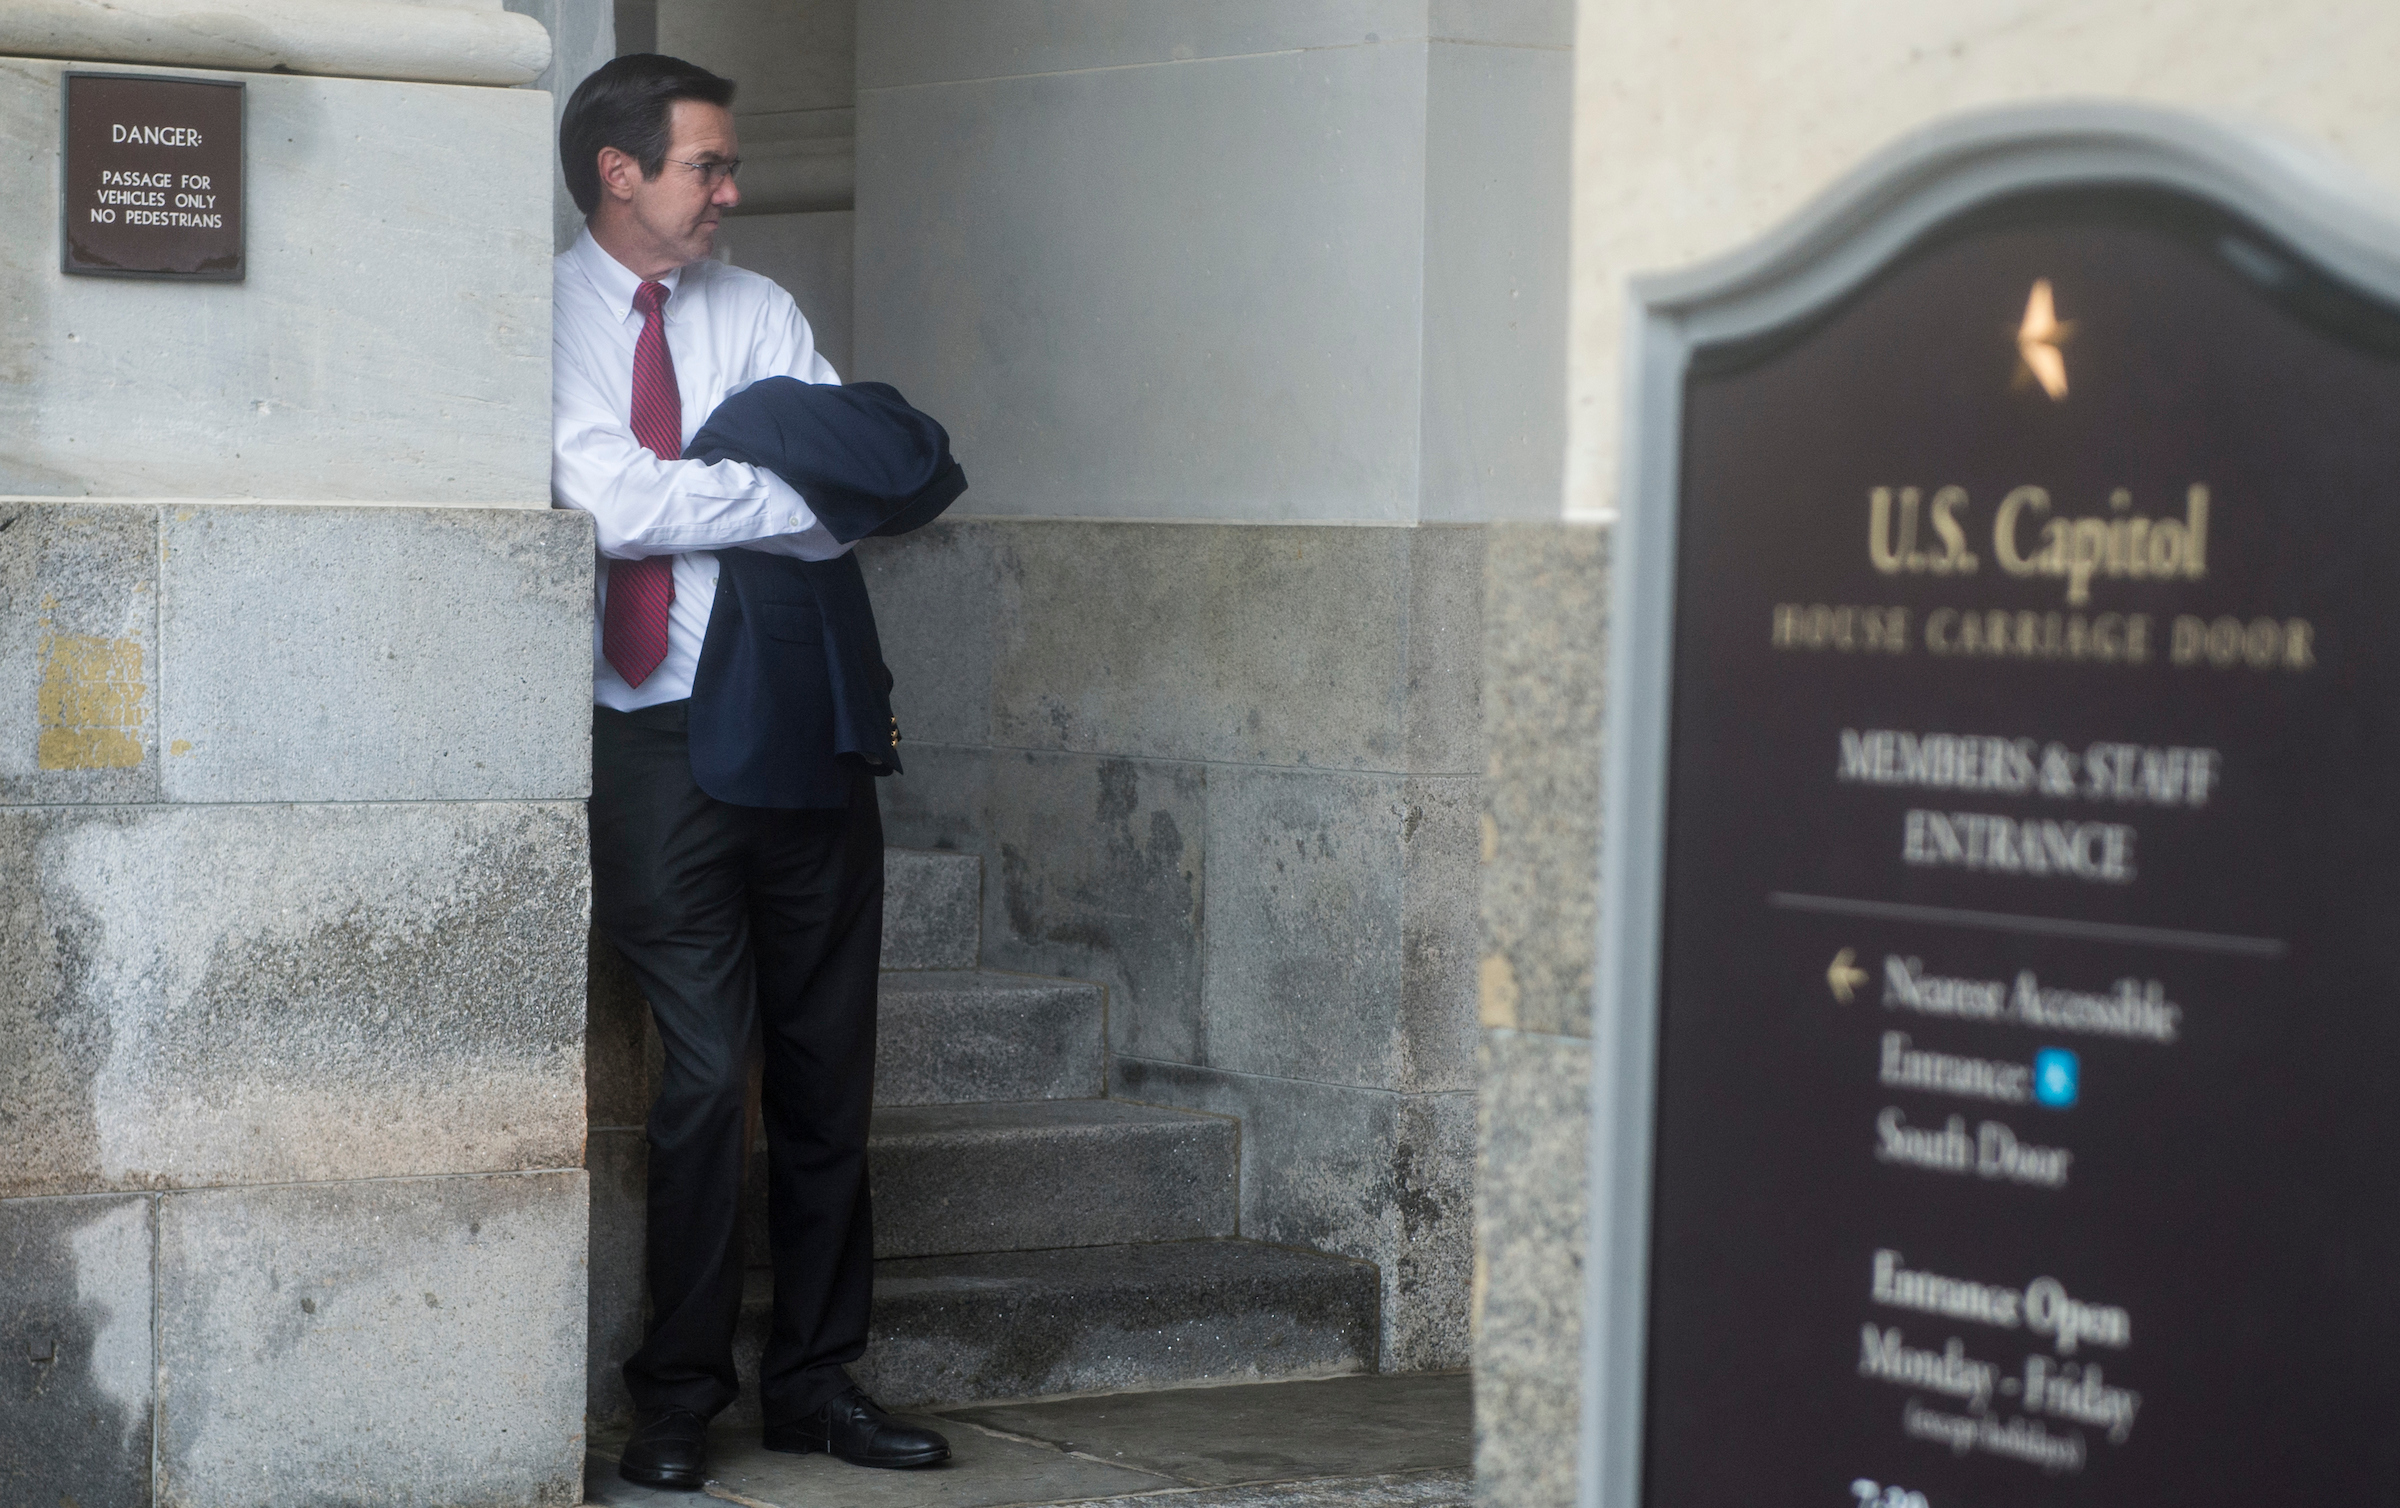 UNITED STATES - JULY 28: Rep. Evan Jenkins, R-W.Va., takes shelter from the rain under the carriage entrance as he waits for his ride following the final votes as Congress leaves town for their summer recess on Friday, July 28, 2017. (Photo By Bill Clark/CQ Roll Call)